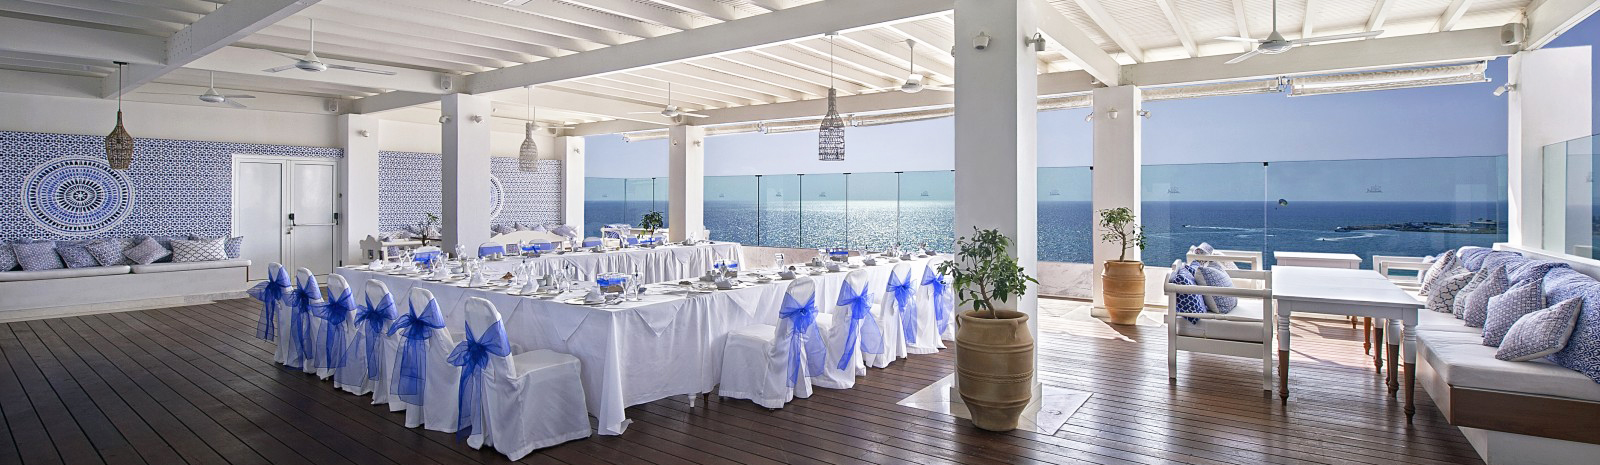 Book your wedding day in Grecian Sands Hotel Ayia Napa